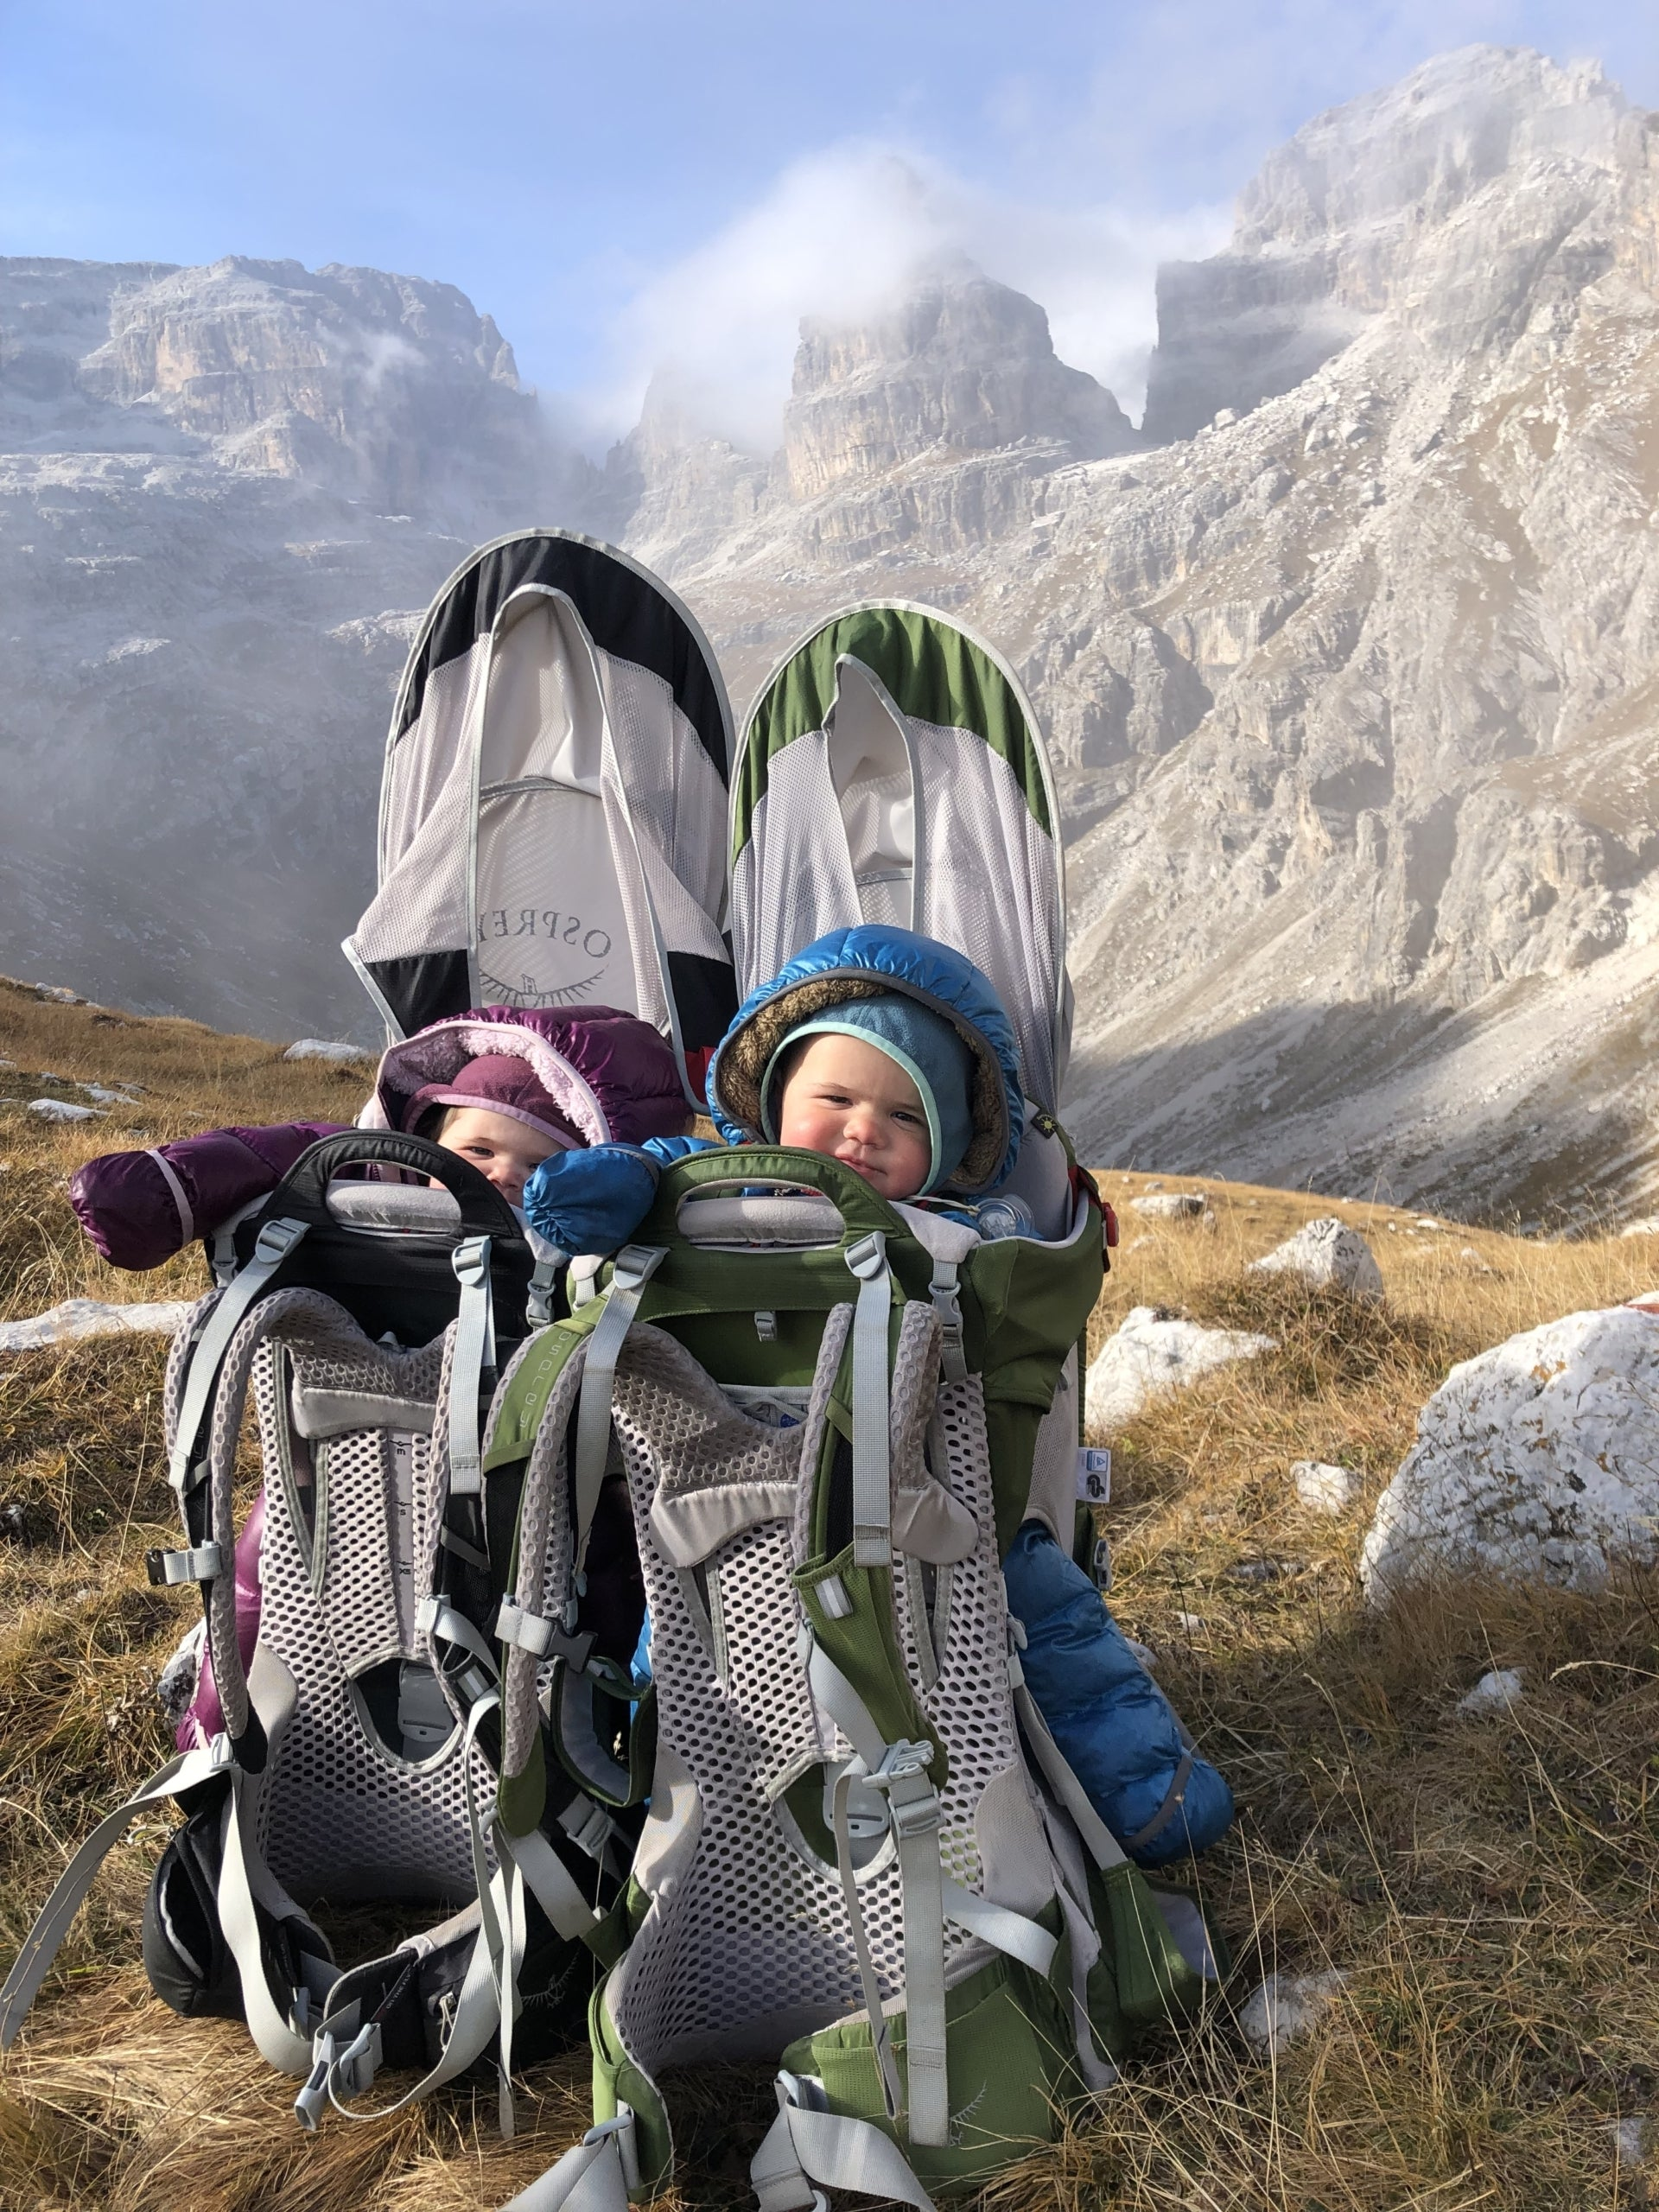 The twins, learning to love the mountains. Photo: Jasmin Caton.